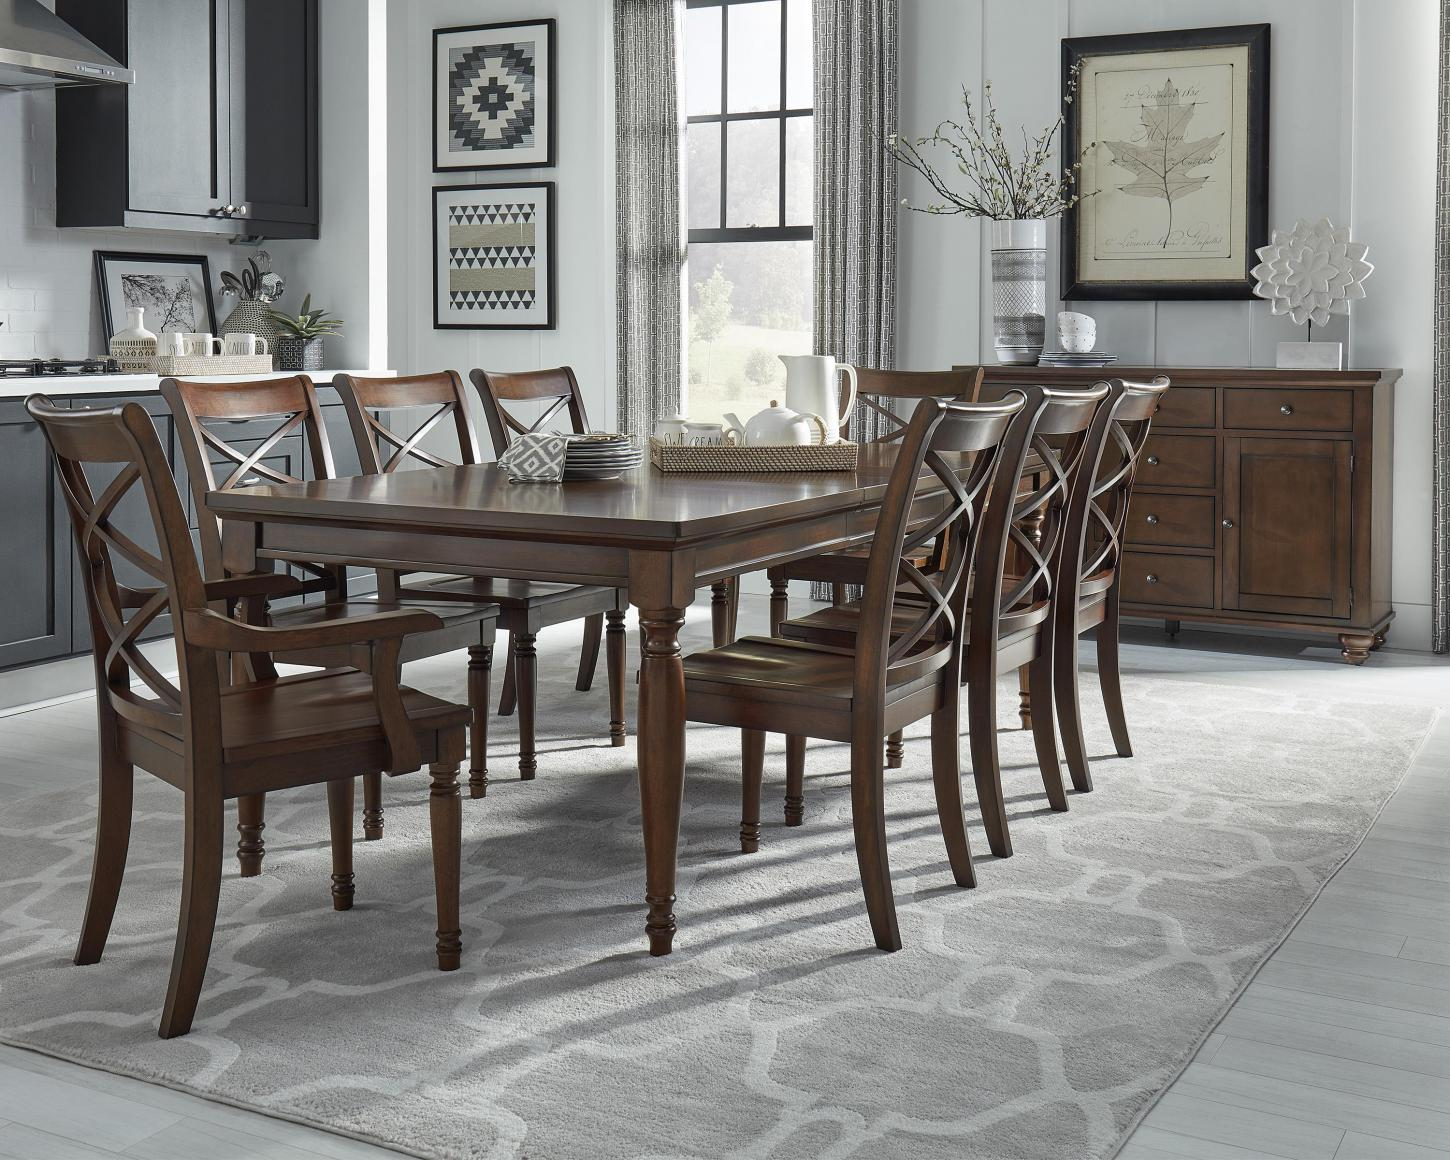 Cambridge Dining Table & Chairs ICB